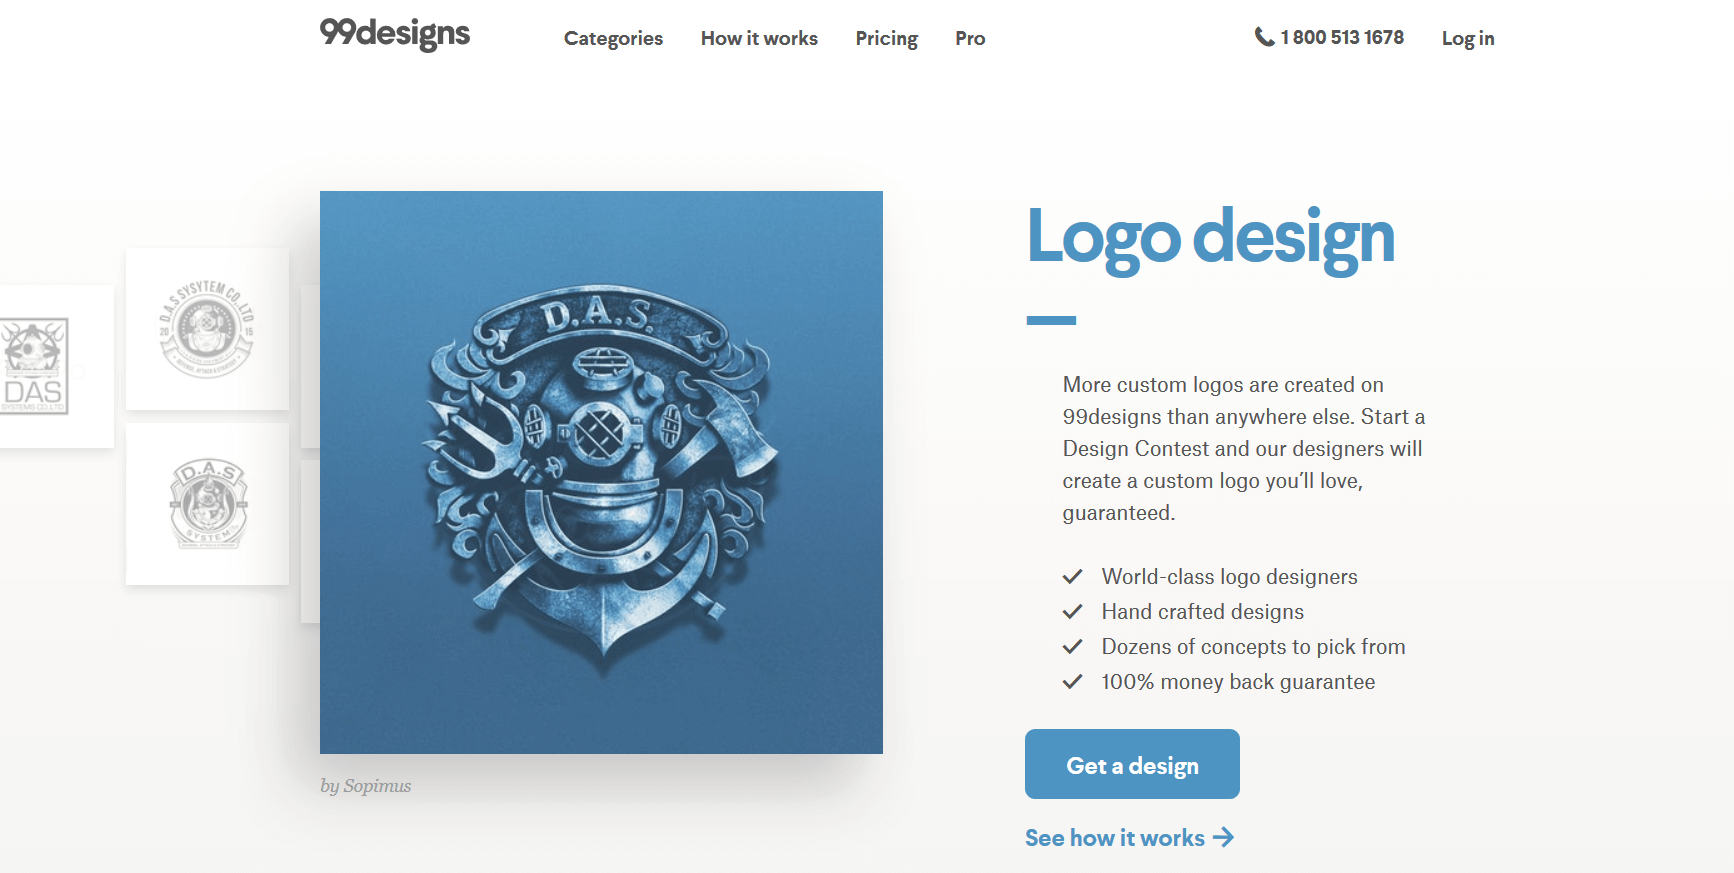 99 designs helps you reach creative designers to create the best logo for you.